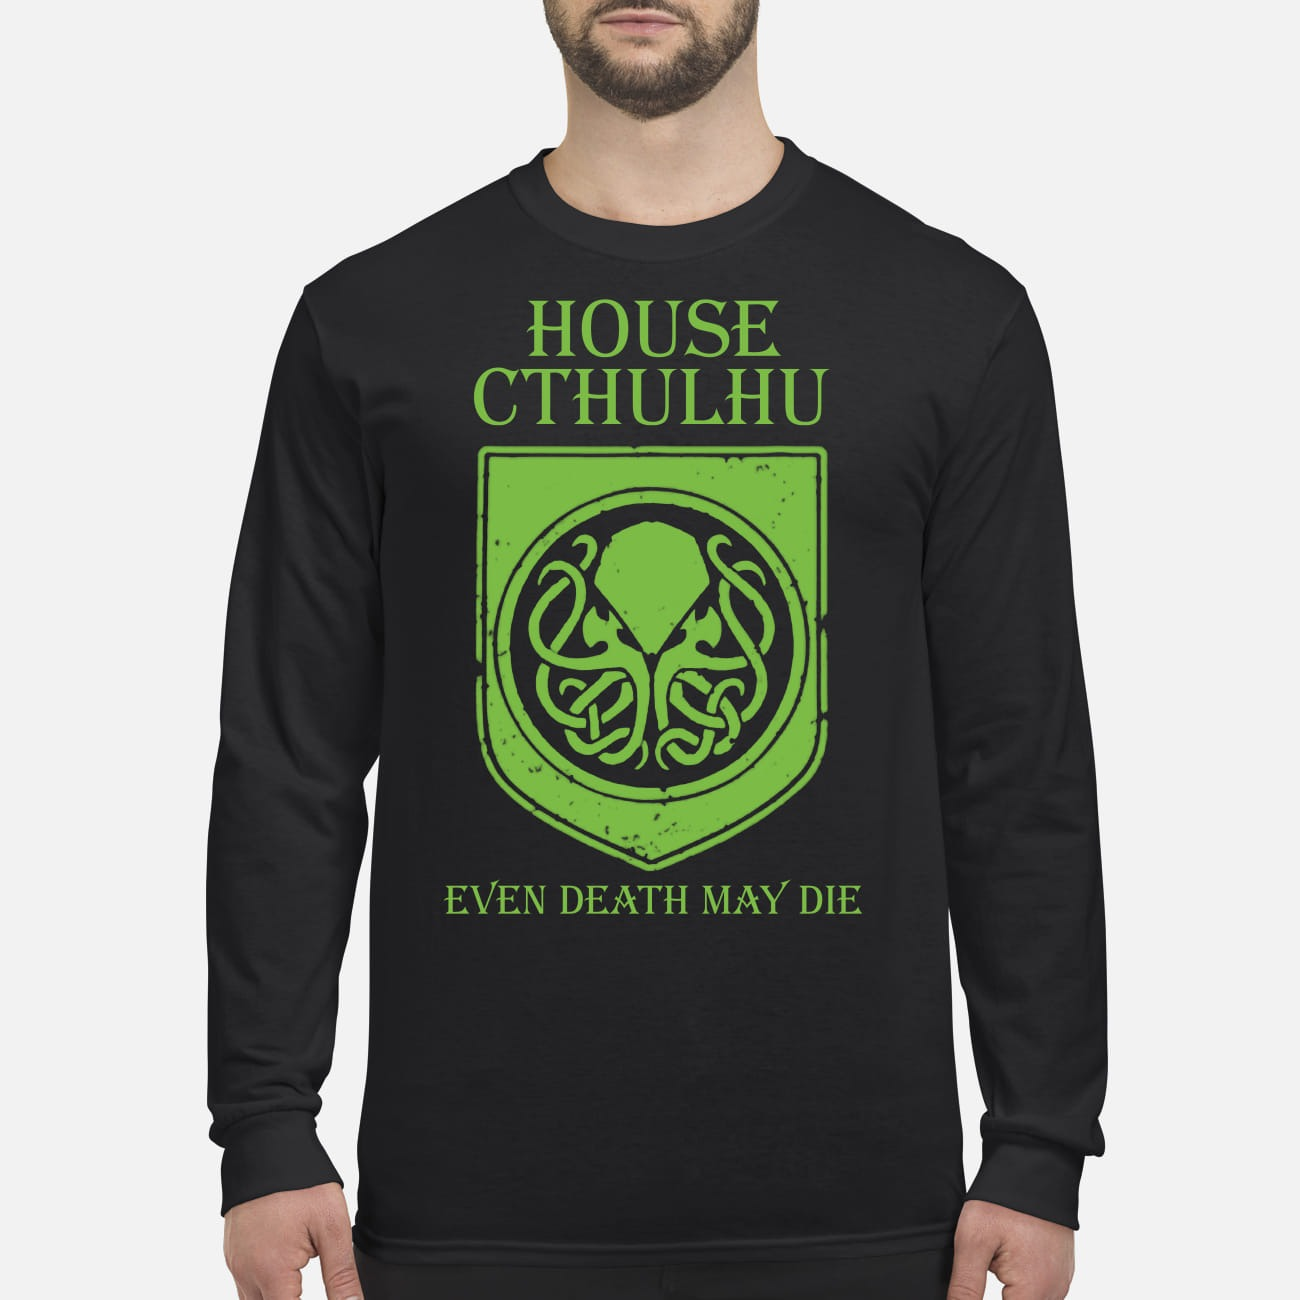 House cthulhu even death may die men's long sleeved shirt